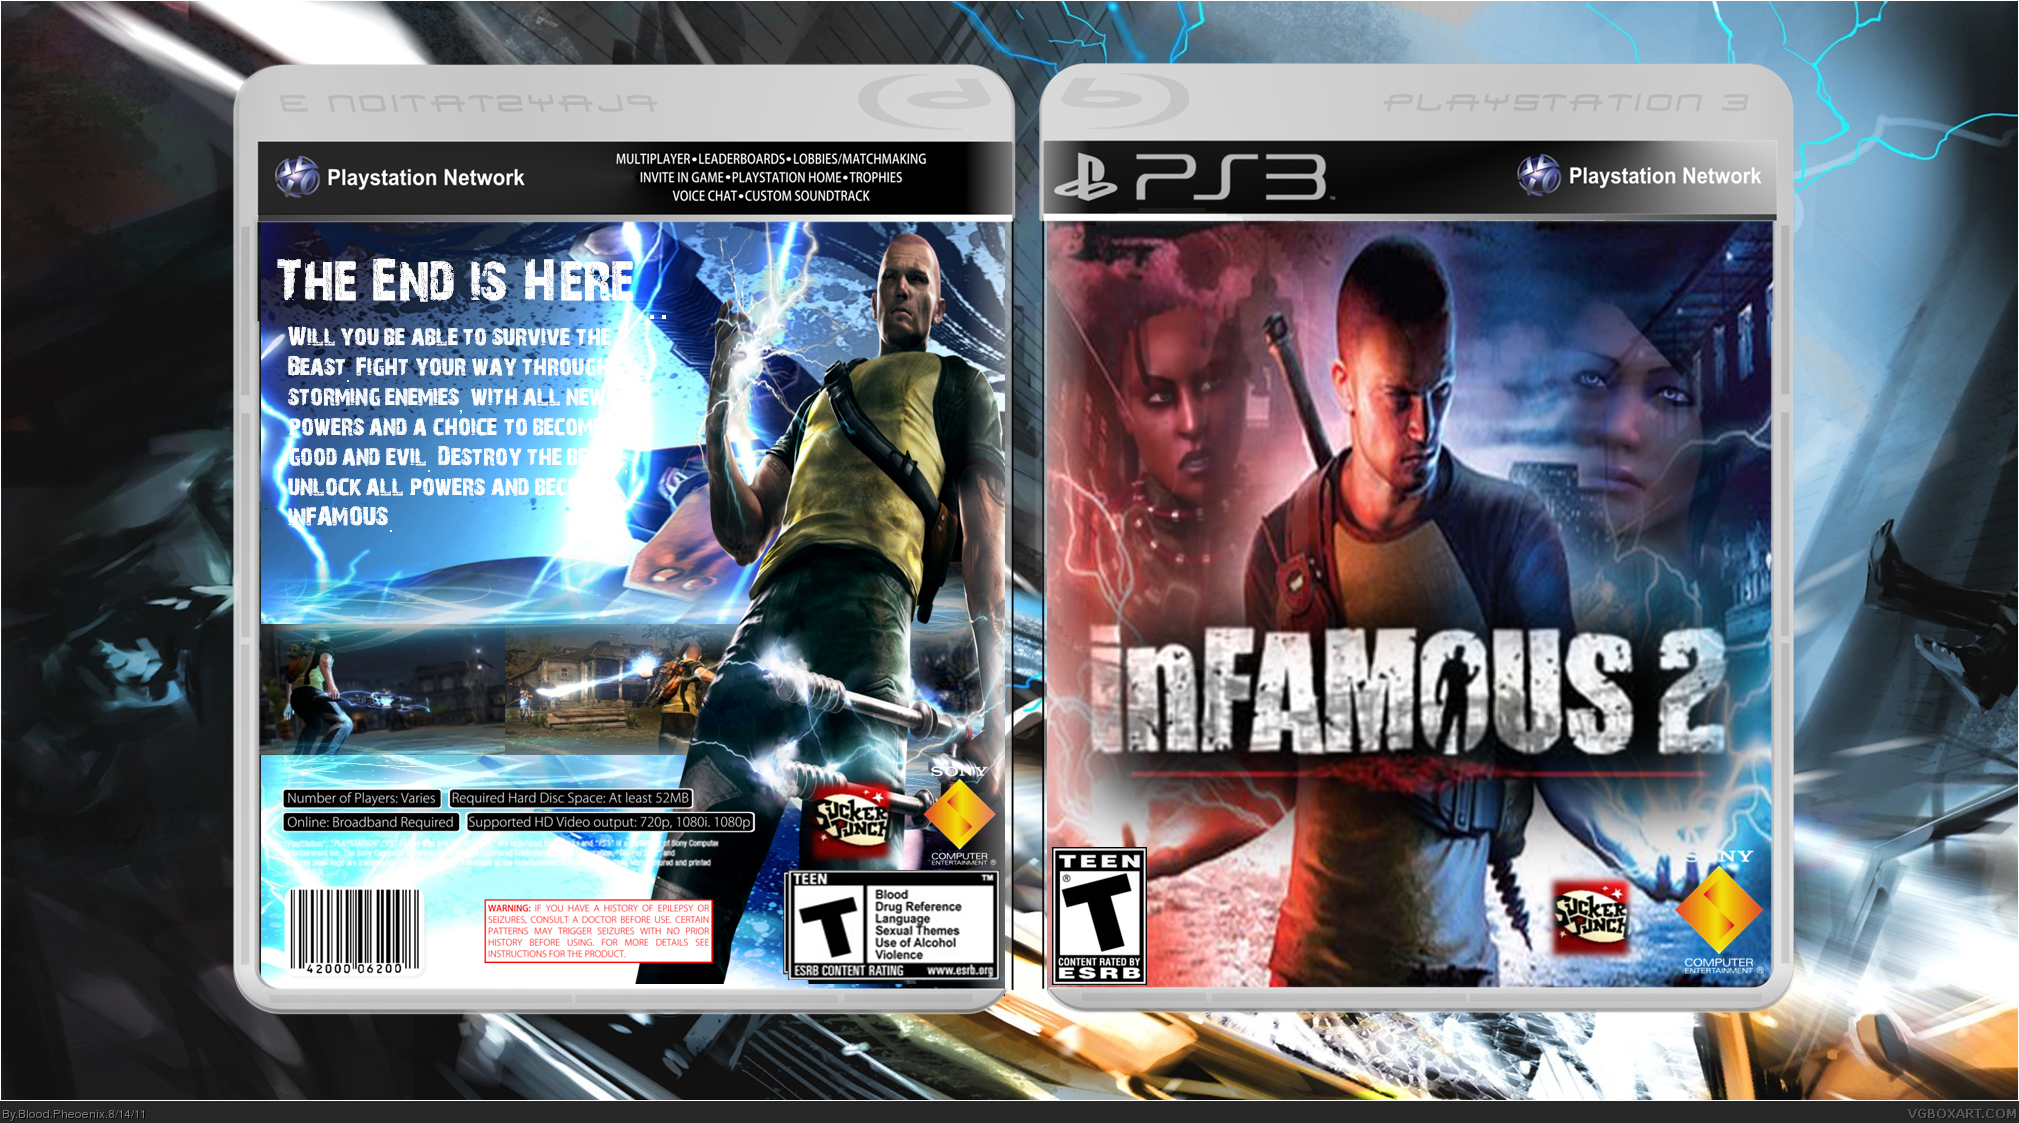 infamous 2 playstation 3 box art cover by blood pheoenix